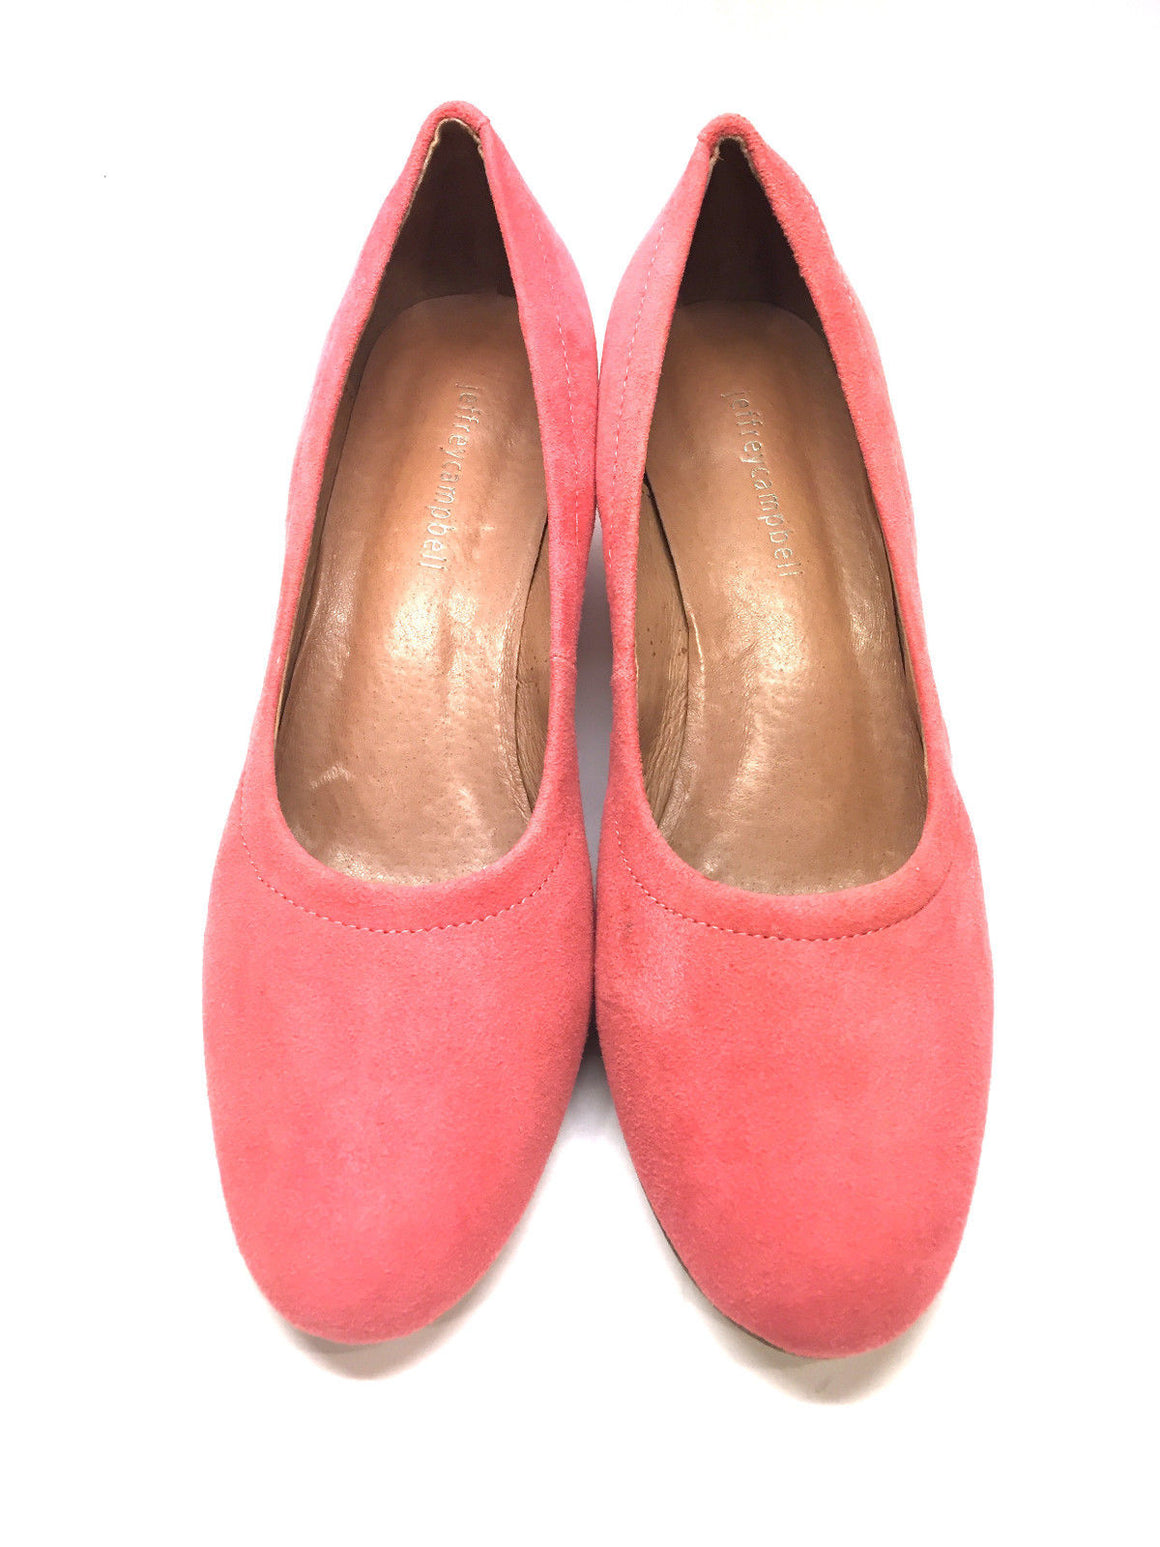 bisbiz.com JEFFREY CAMPBELL  Coral-Pink Suede Low-Heel Pumps  Size: 7.5 - Bis Luxury Resale